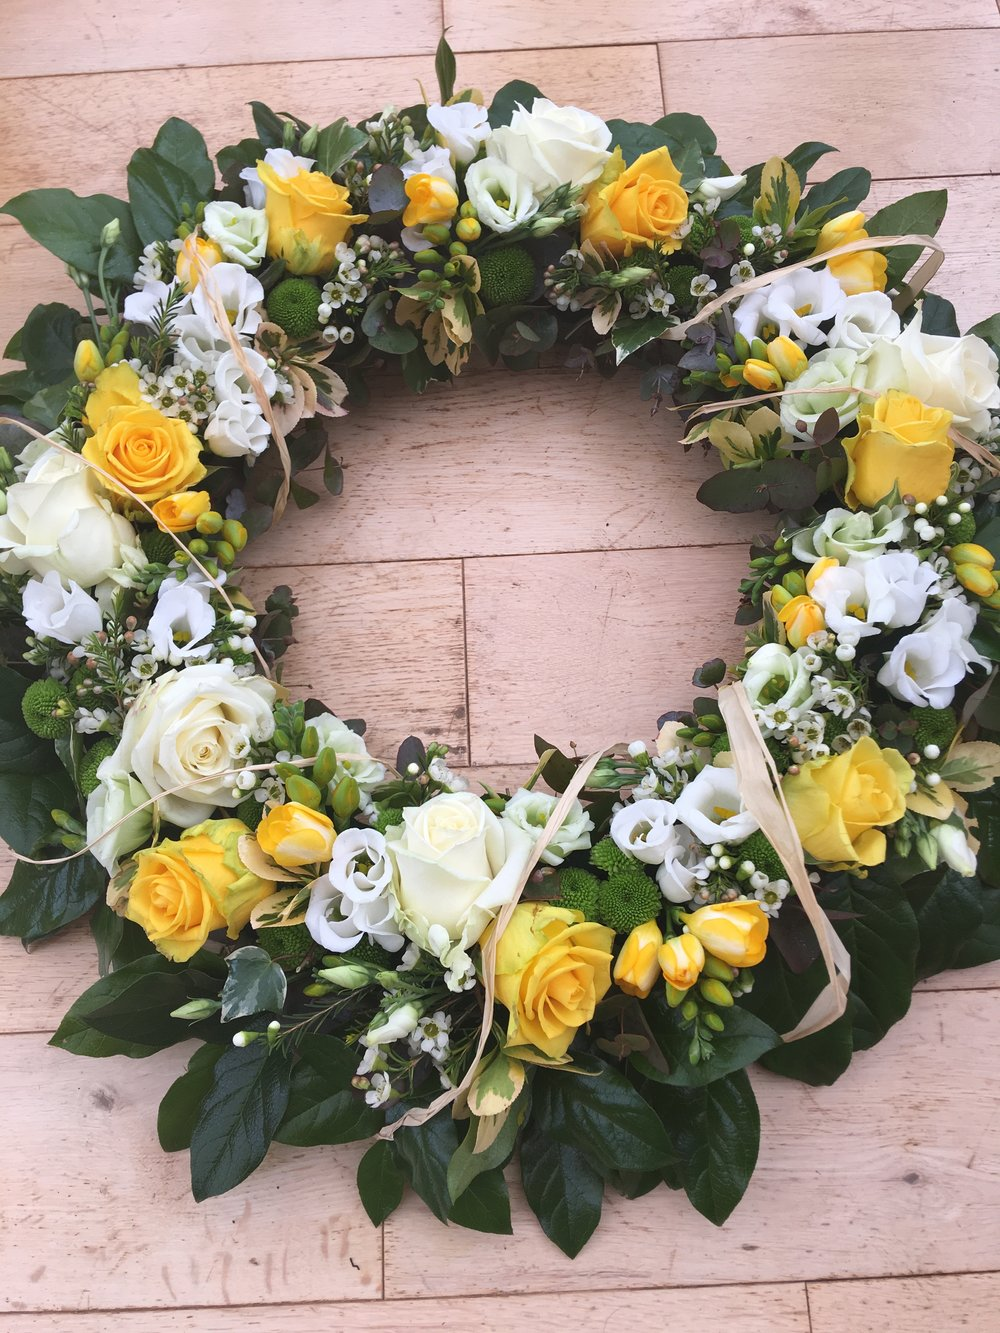 yellowandwhitefuneralwreath